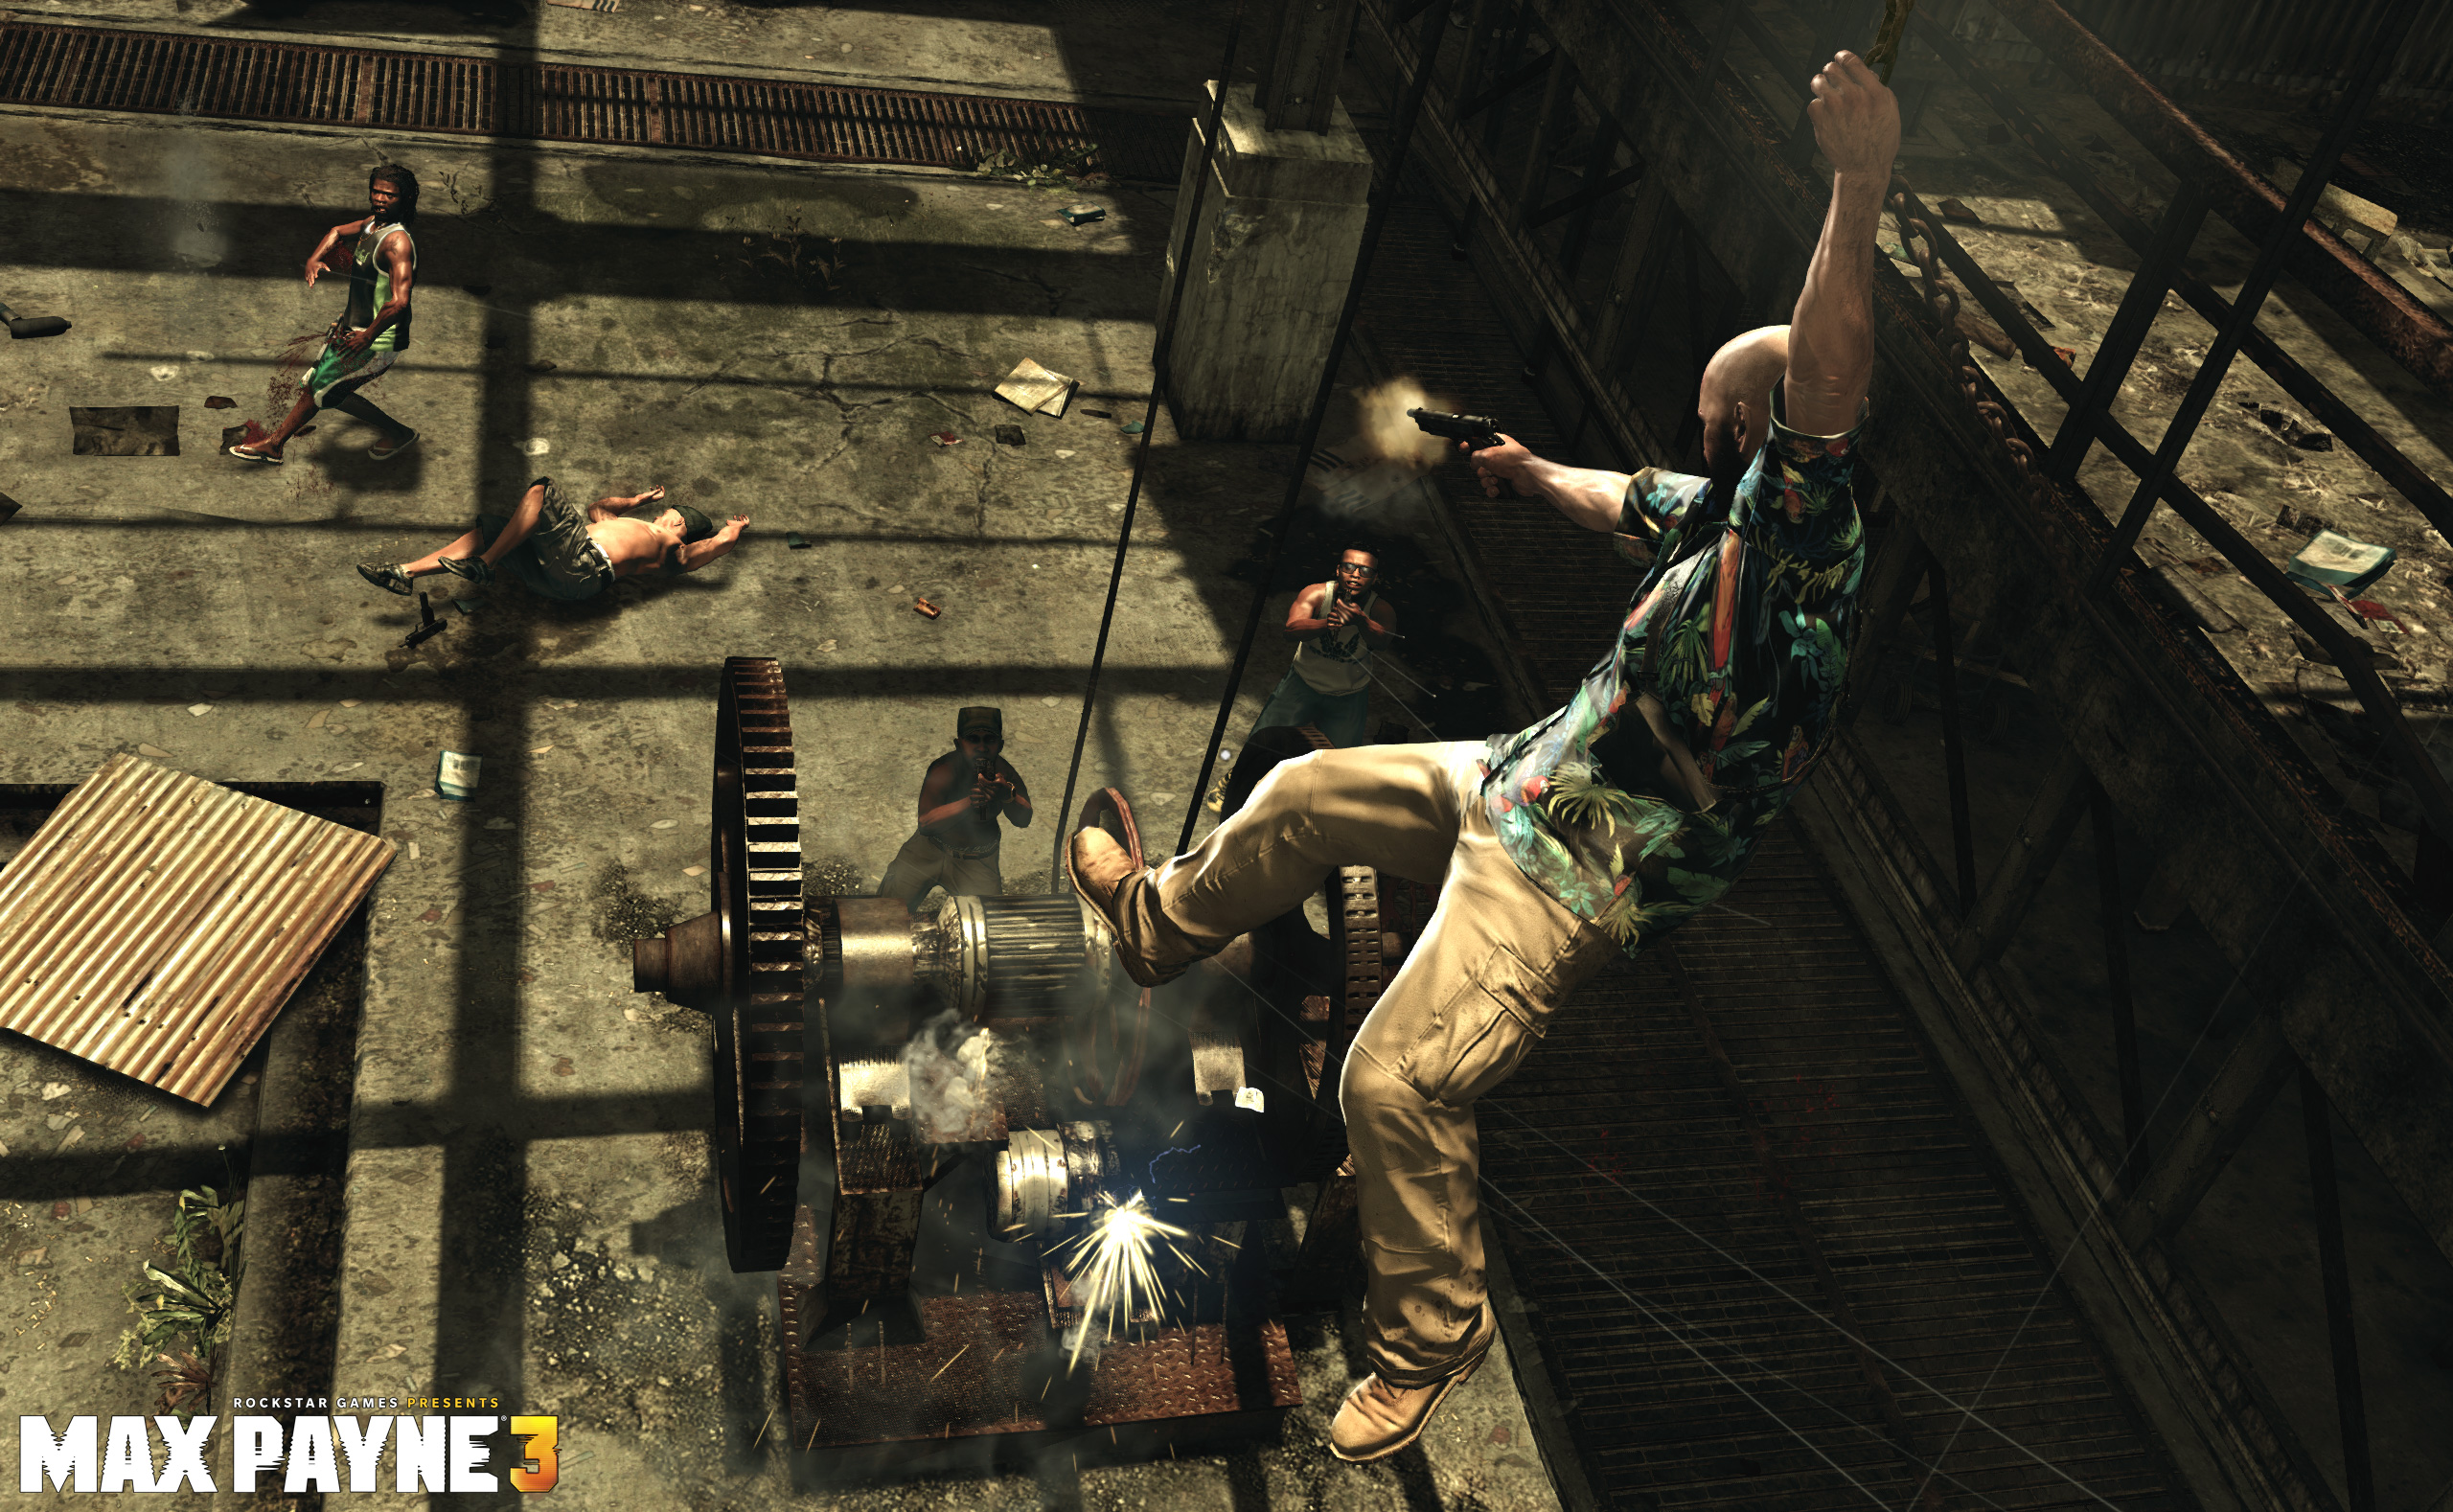 Max Payne 3 Wallpapers Video Game Hq Max Payne 3 Pictures 4k